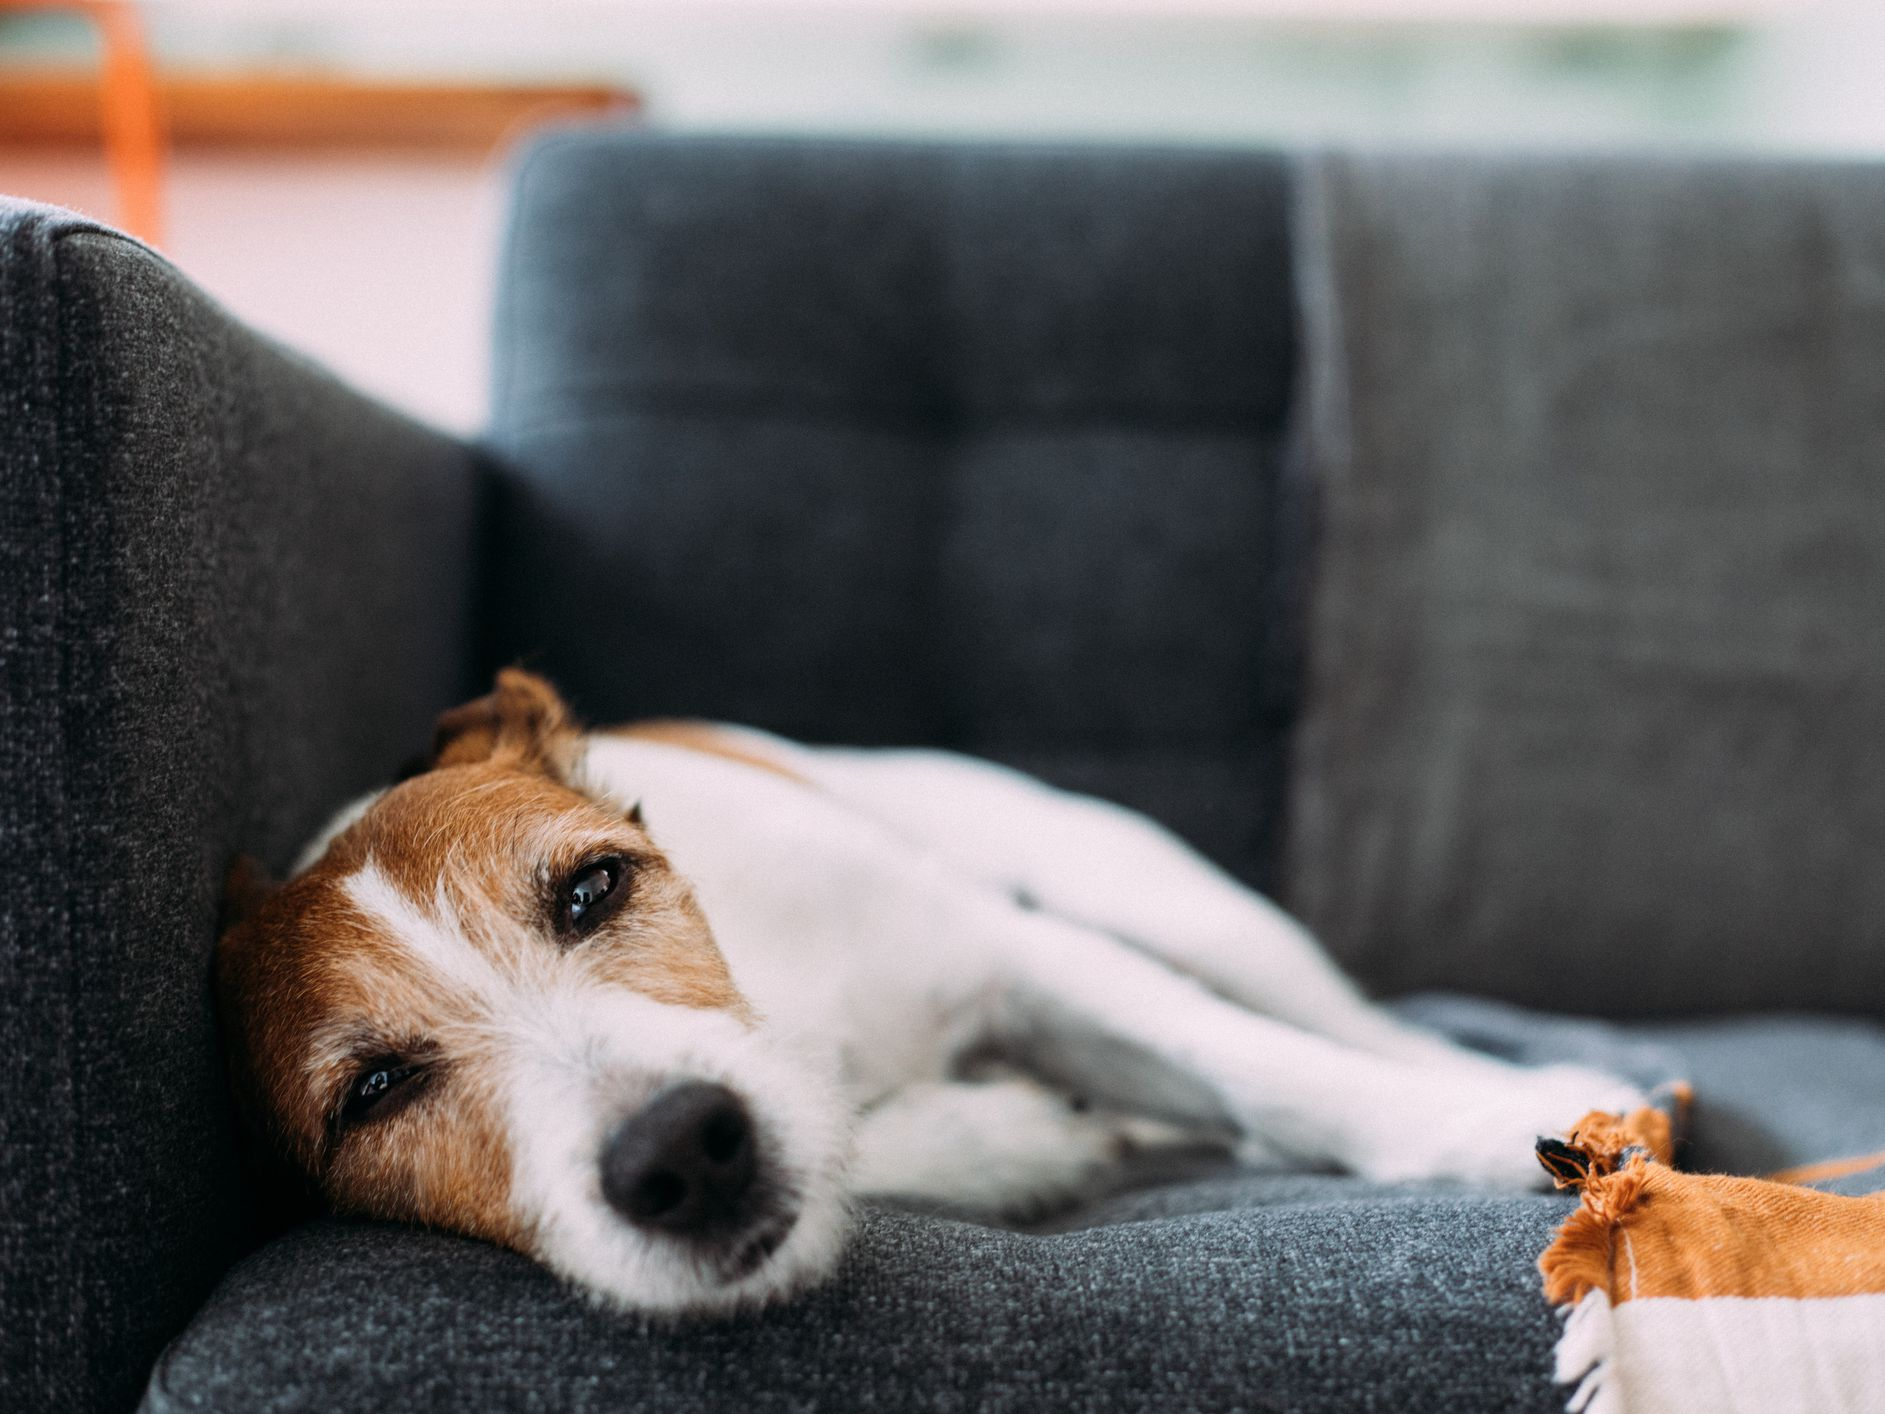 Why Isn't My Pet Acting Normal?